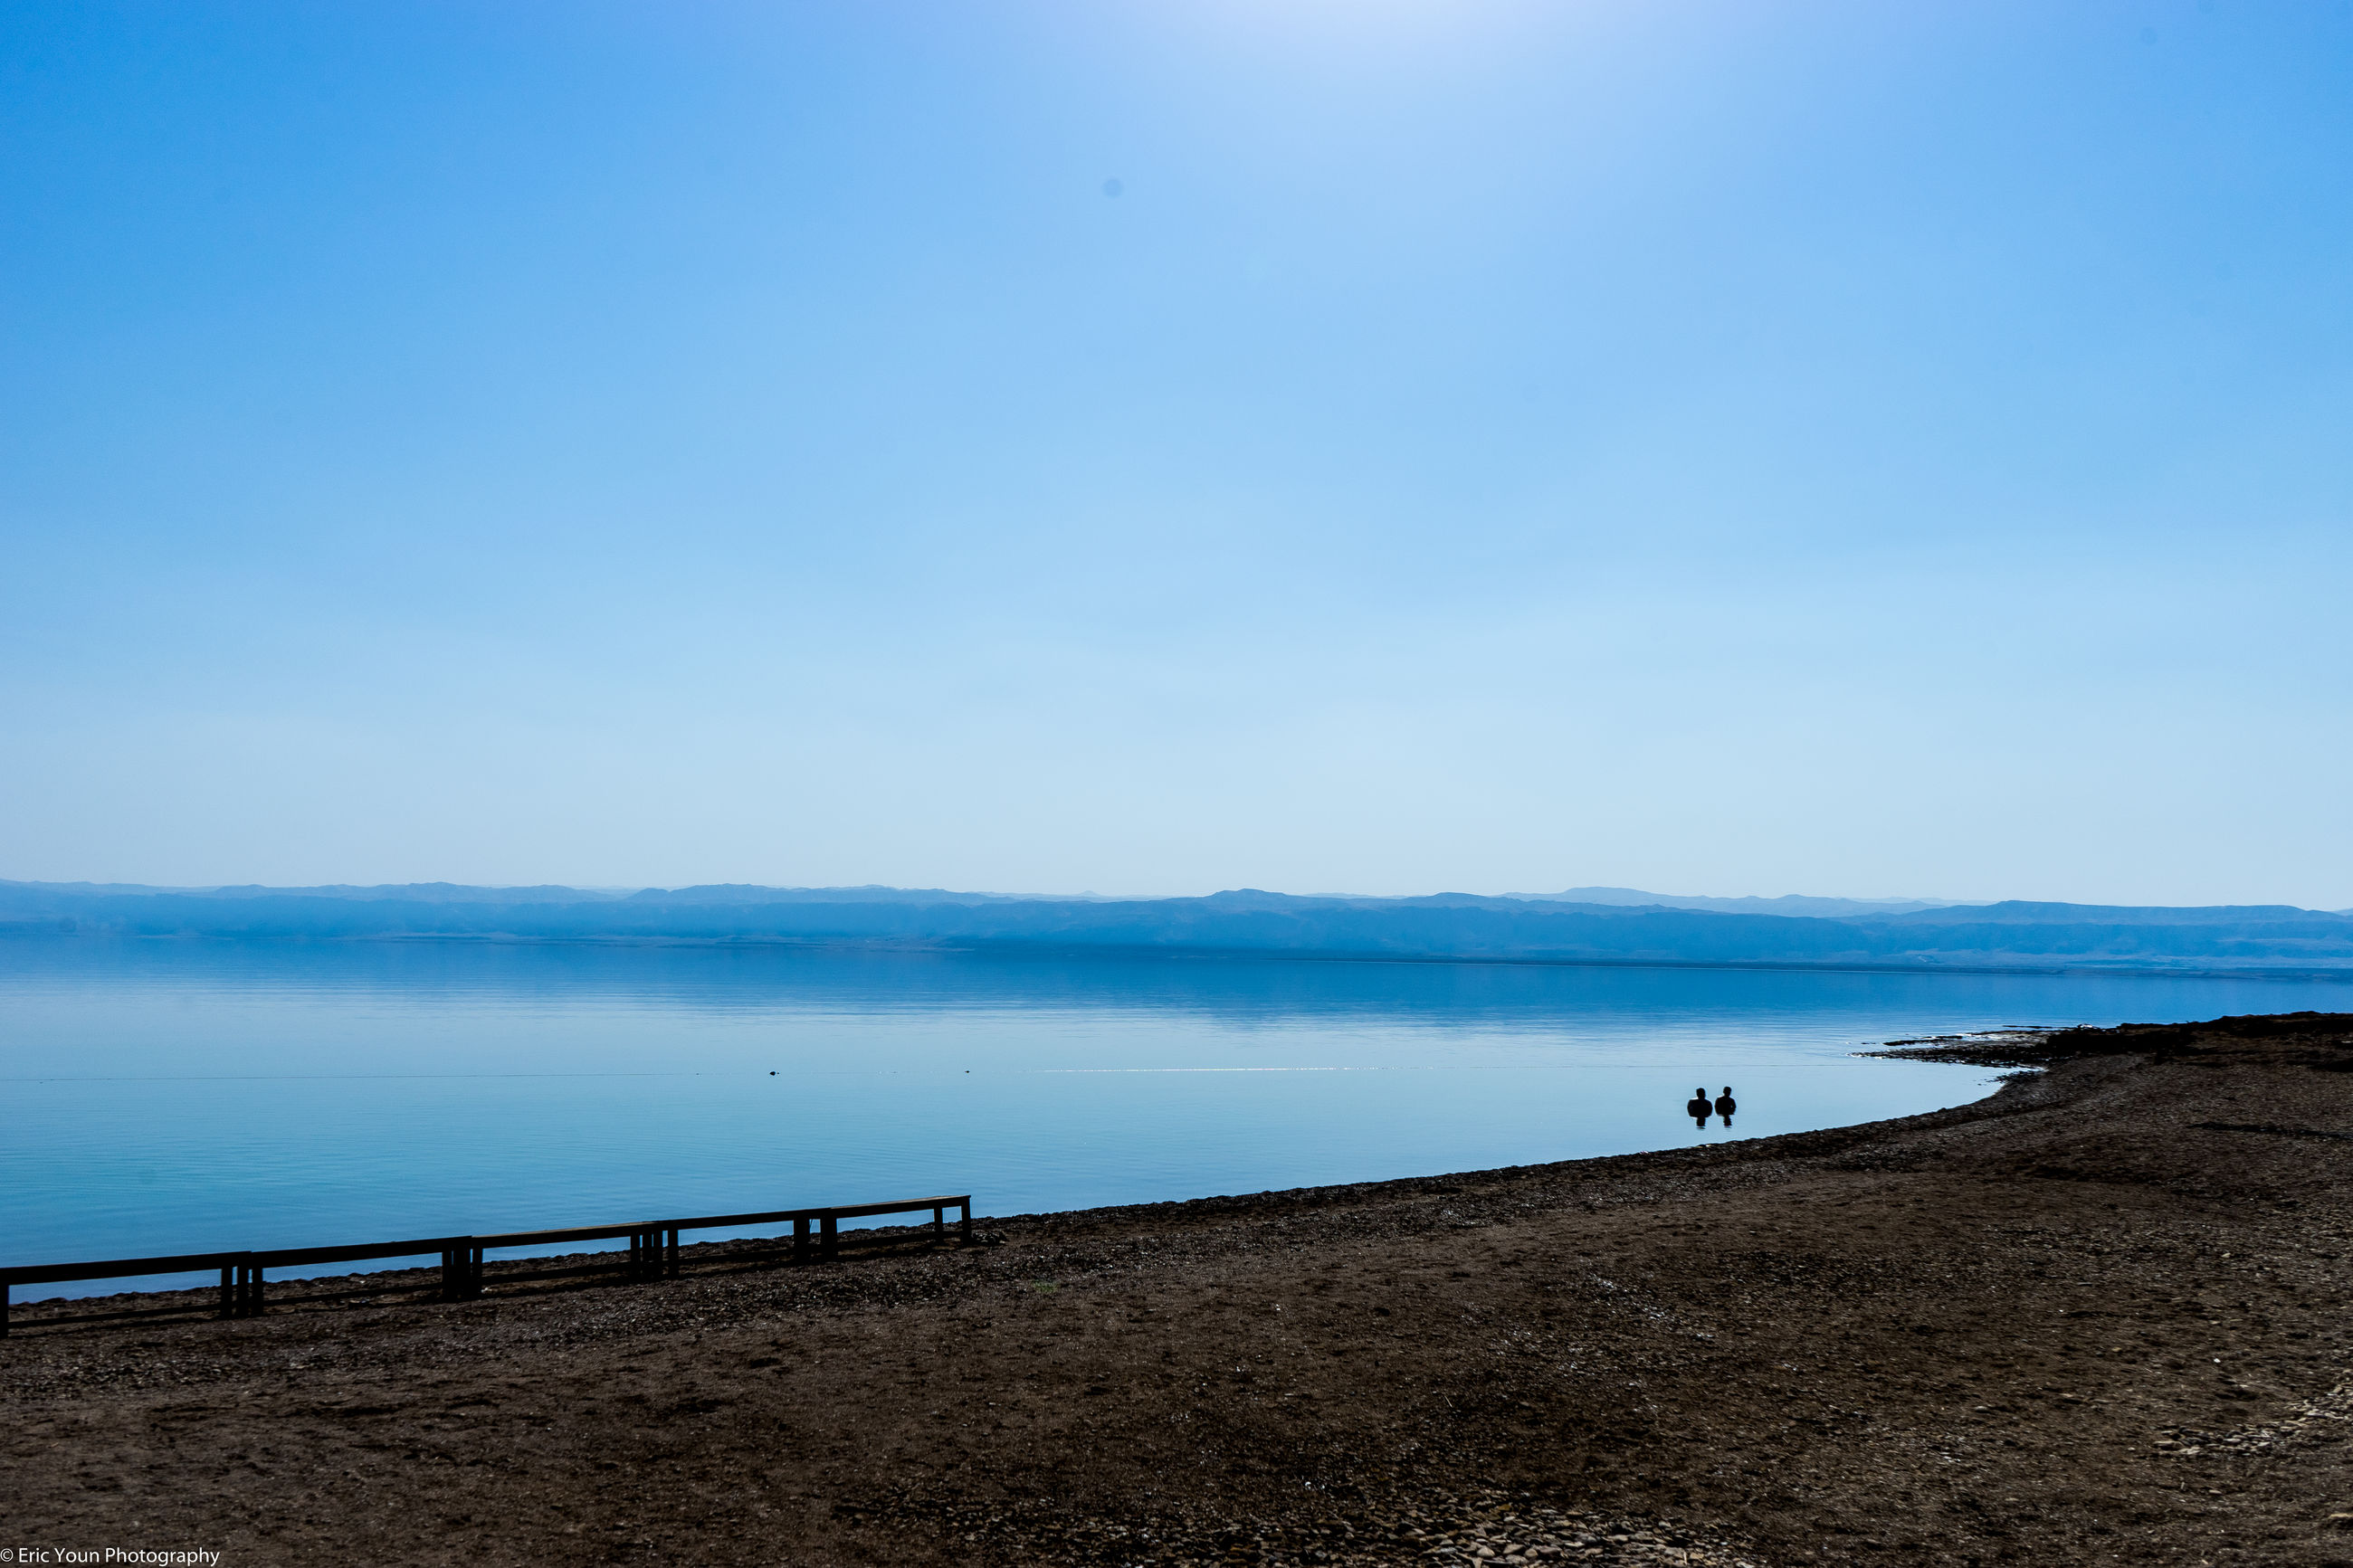 water, clear sky, copy space, sea, blue, beach, tranquil scene, tranquility, scenics, shore, beauty in nature, nature, horizon over water, sand, idyllic, incidental people, calm, coastline, outdoors, day